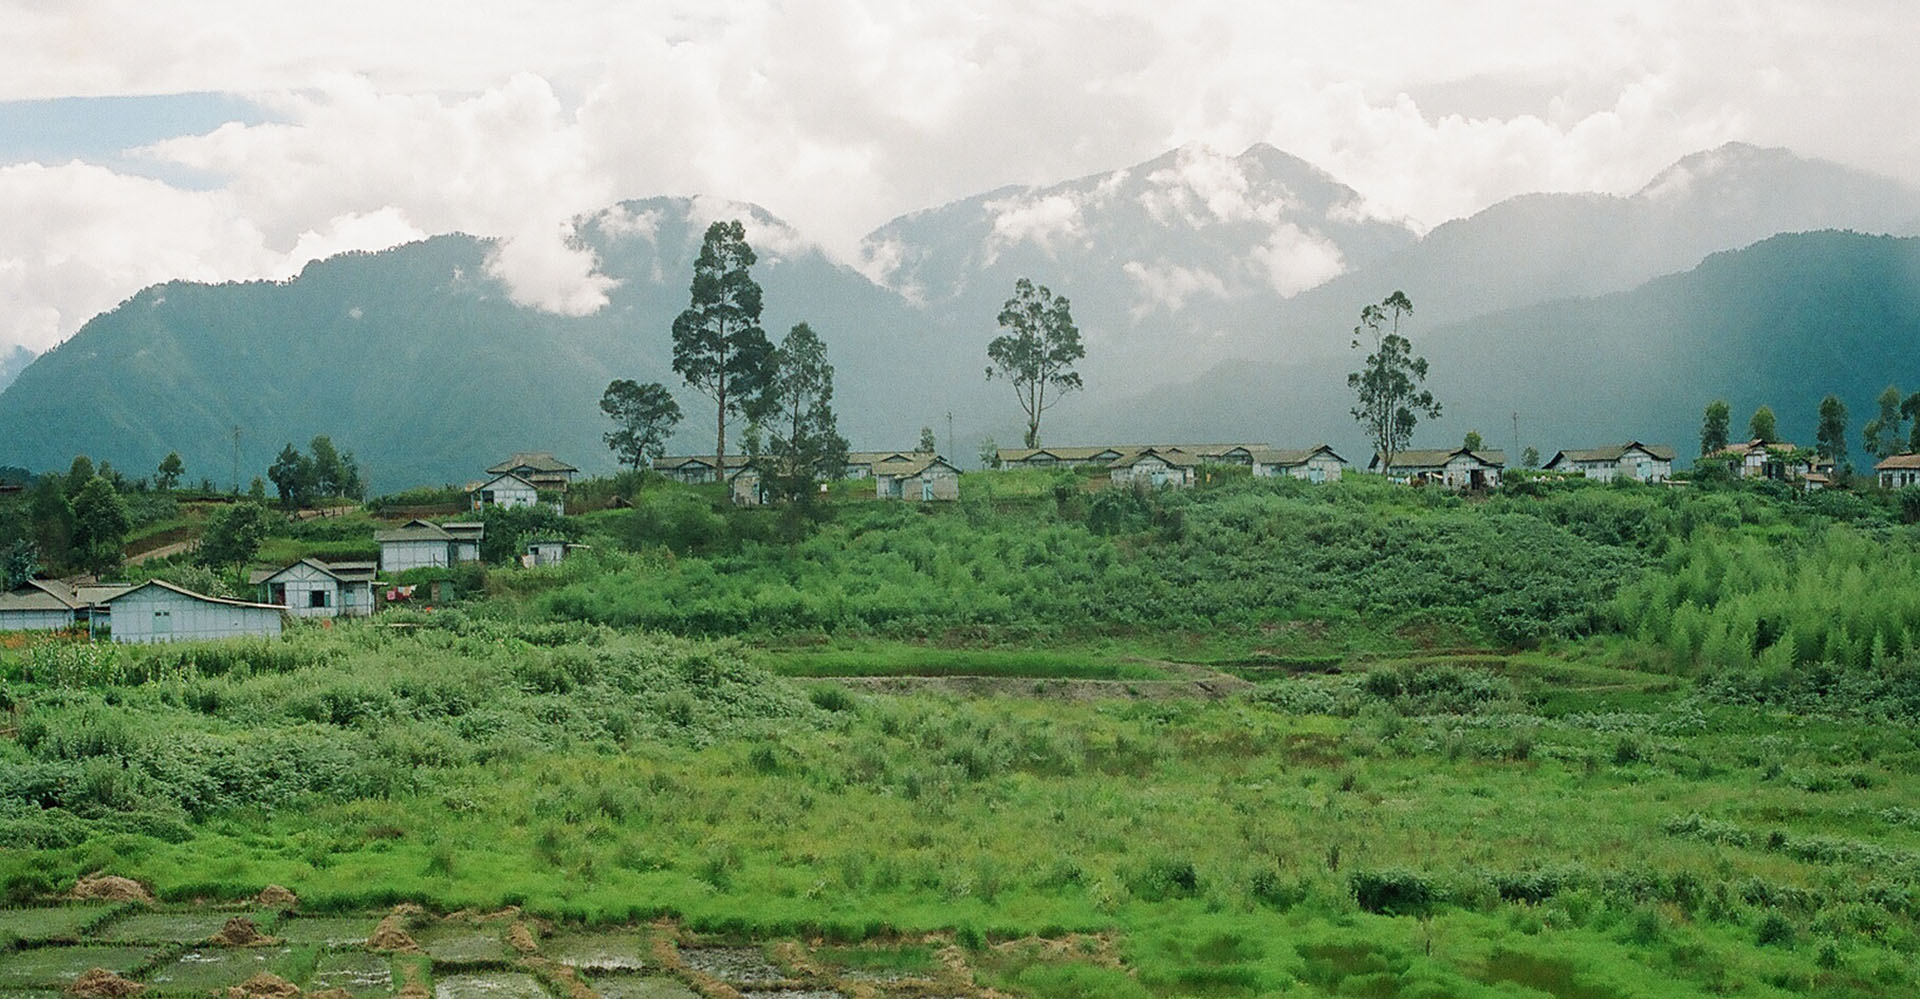 Remote Valleys of Arunachal